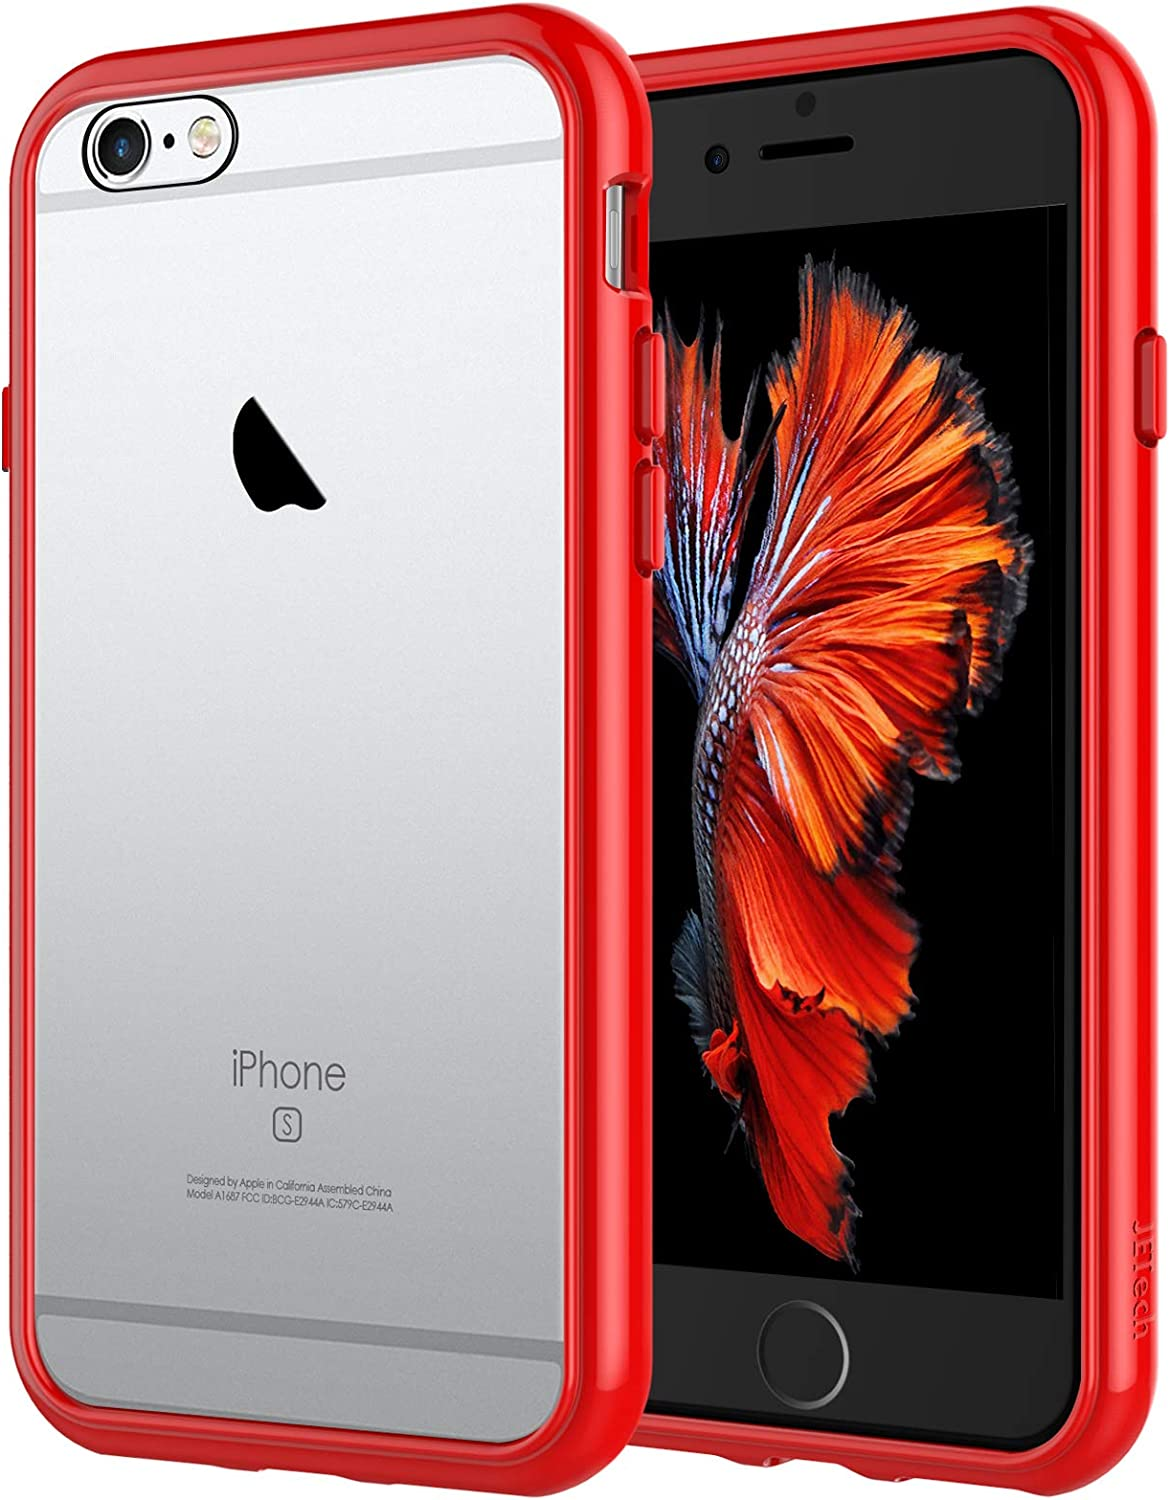 JETech Case for iPhone 6 and iPhone 6s, Shock-Absorption Bumper Cover, Anti-Scratch Clear Back (Red)